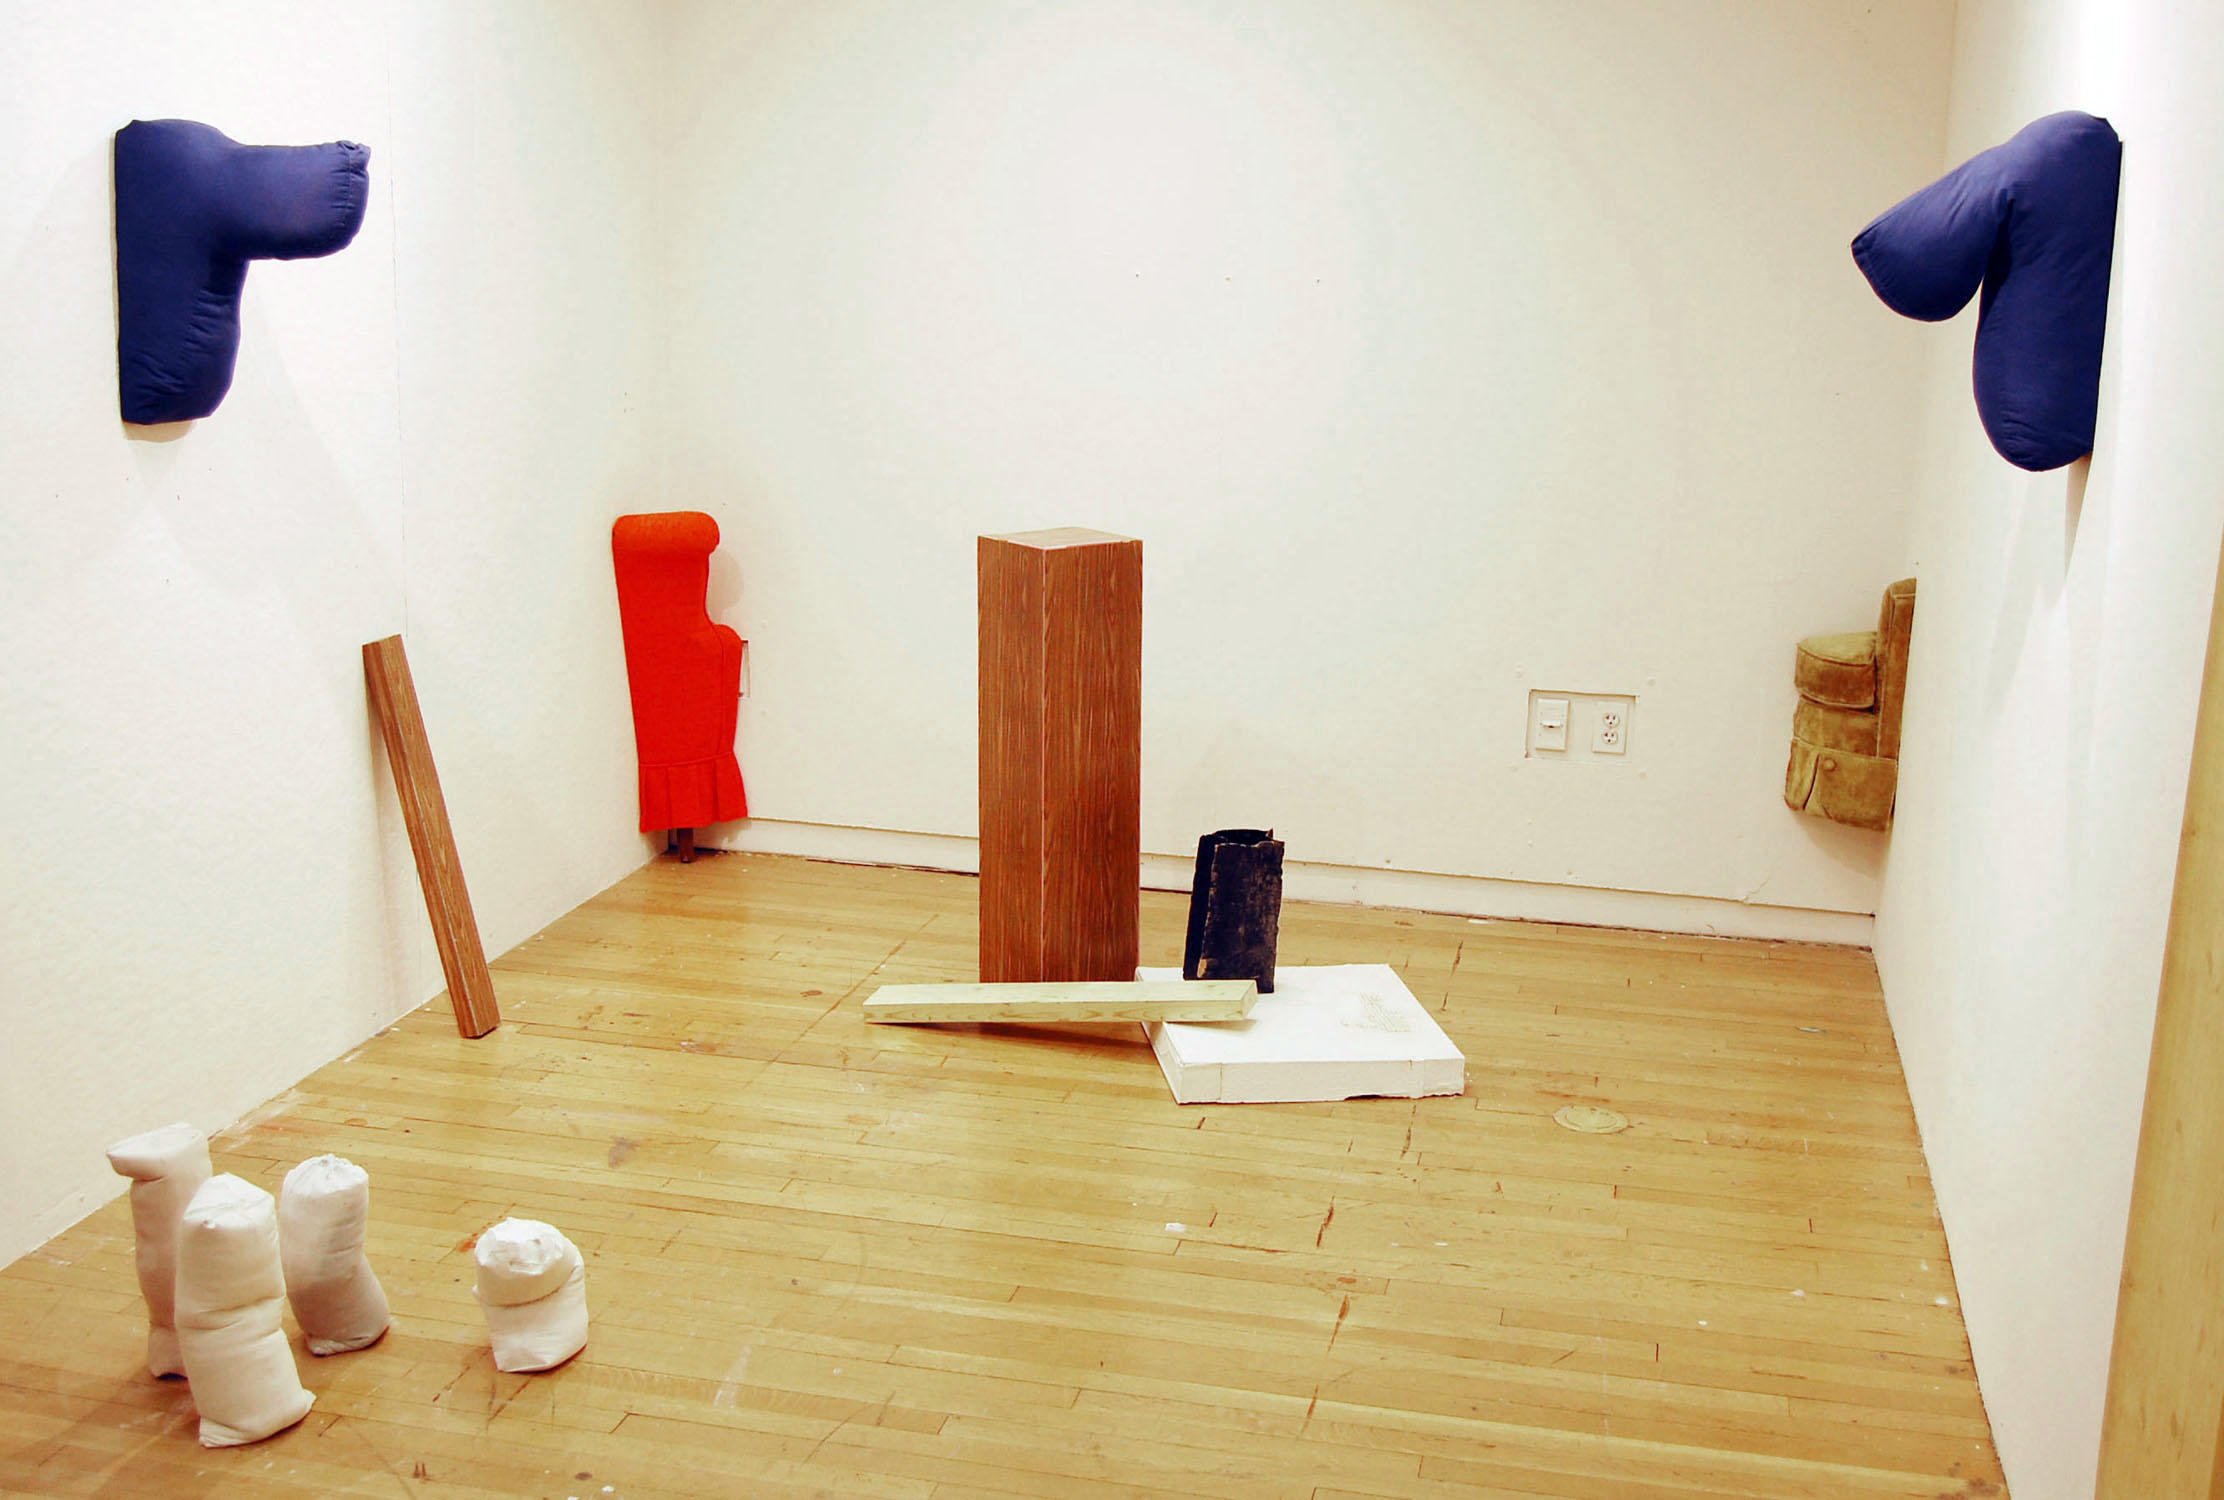 Untitled (Installation view), 2012